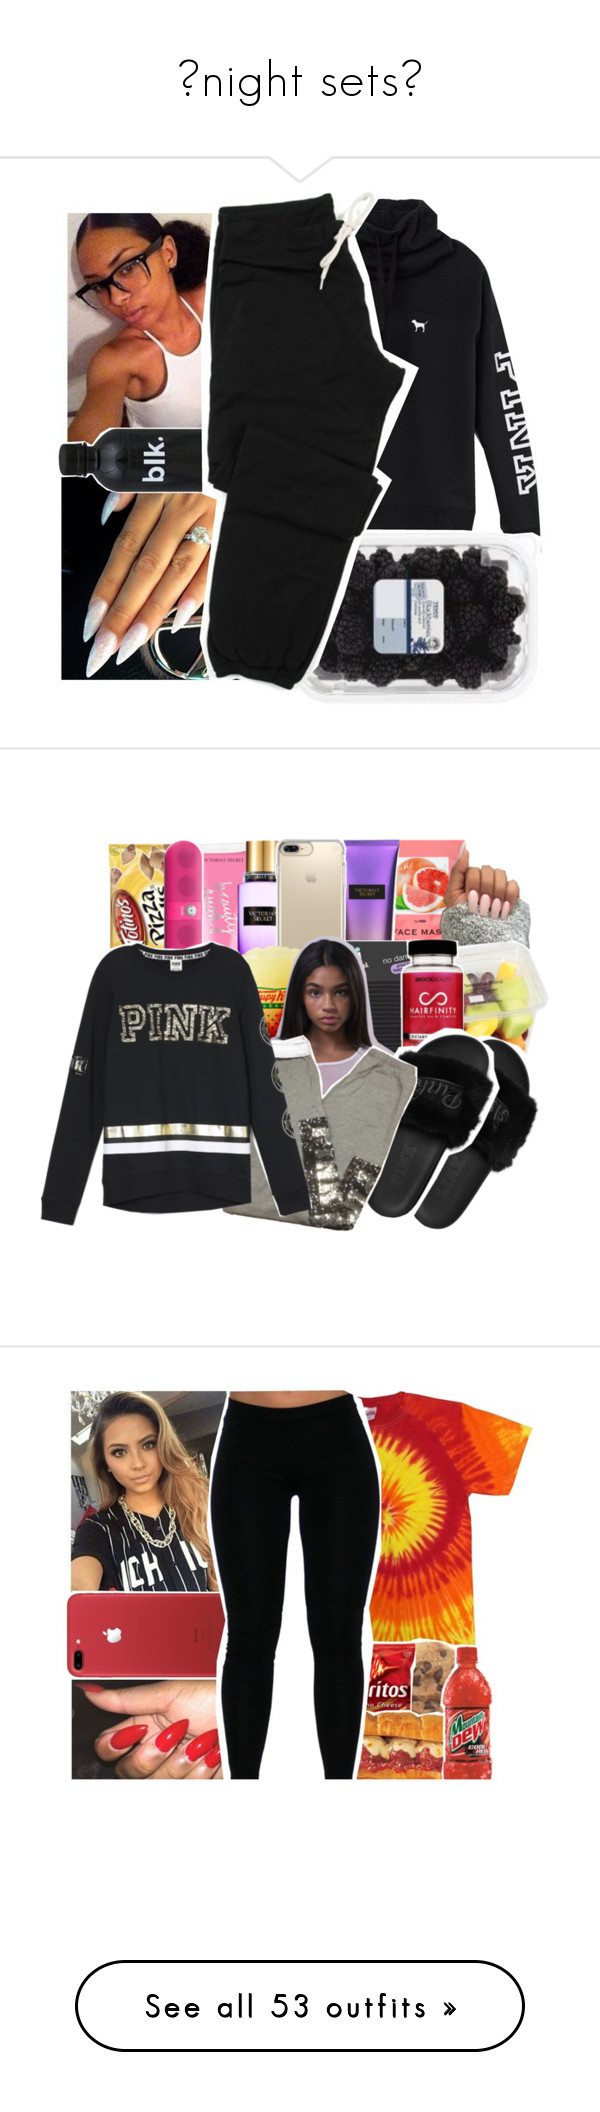 """""""night sets"""" by savagebxtch24 ❤ liked on Polyvore featuring Victoria's Secret, H&M, Speck, Conair, Beats by Dr. Dre, UGG Australia, NIKE, Gildan, Kale and Donna Karan"""